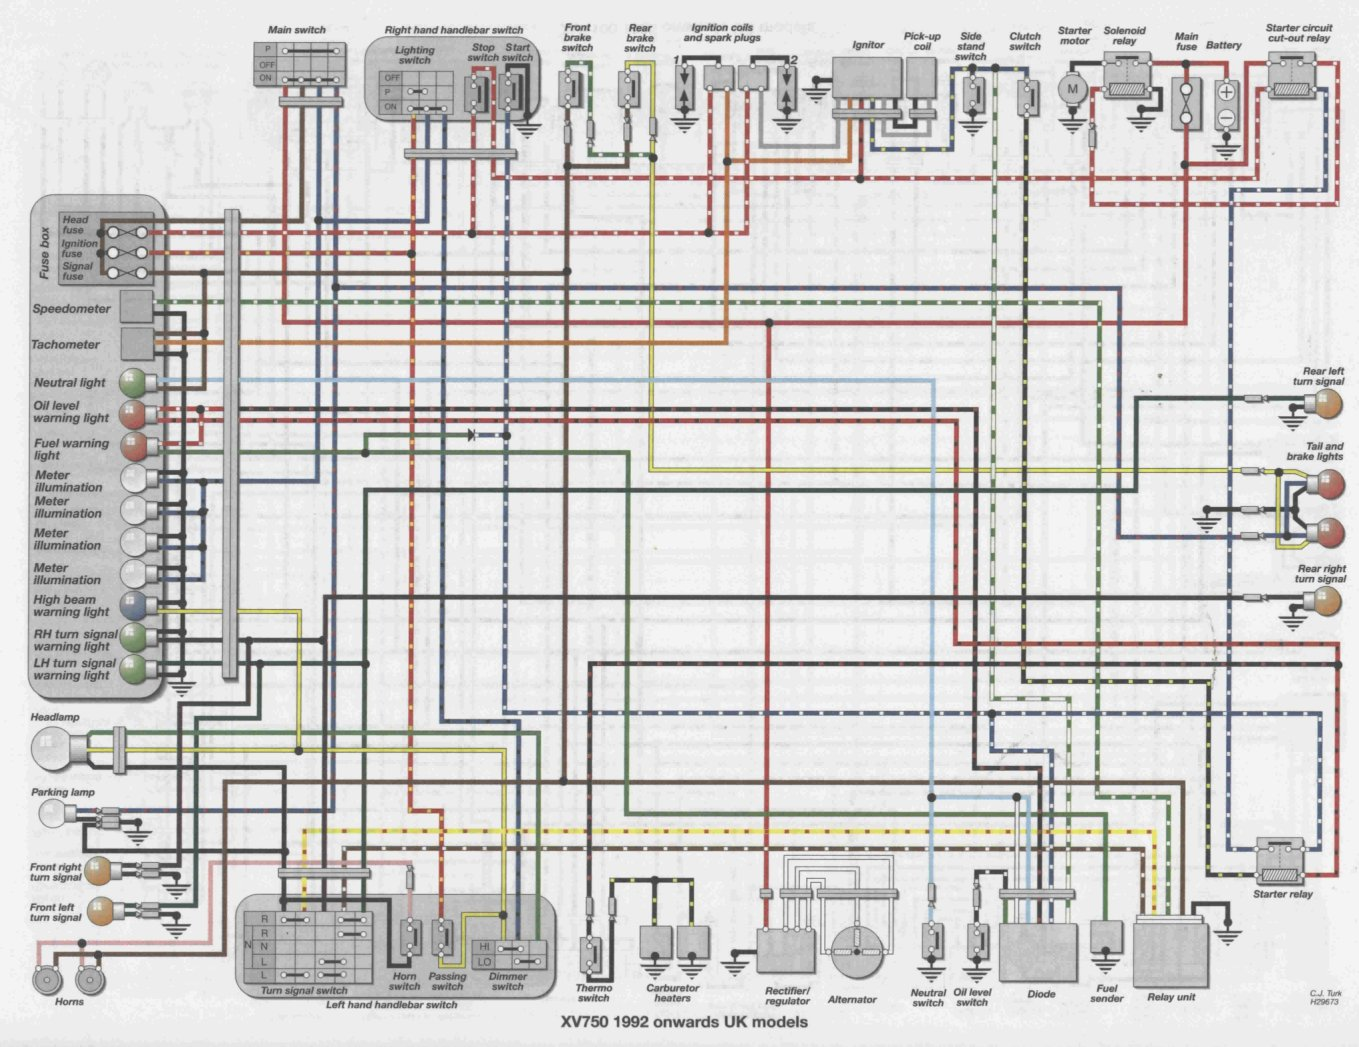 yamaha virago wiring diagram typical western star fuse box get free image about